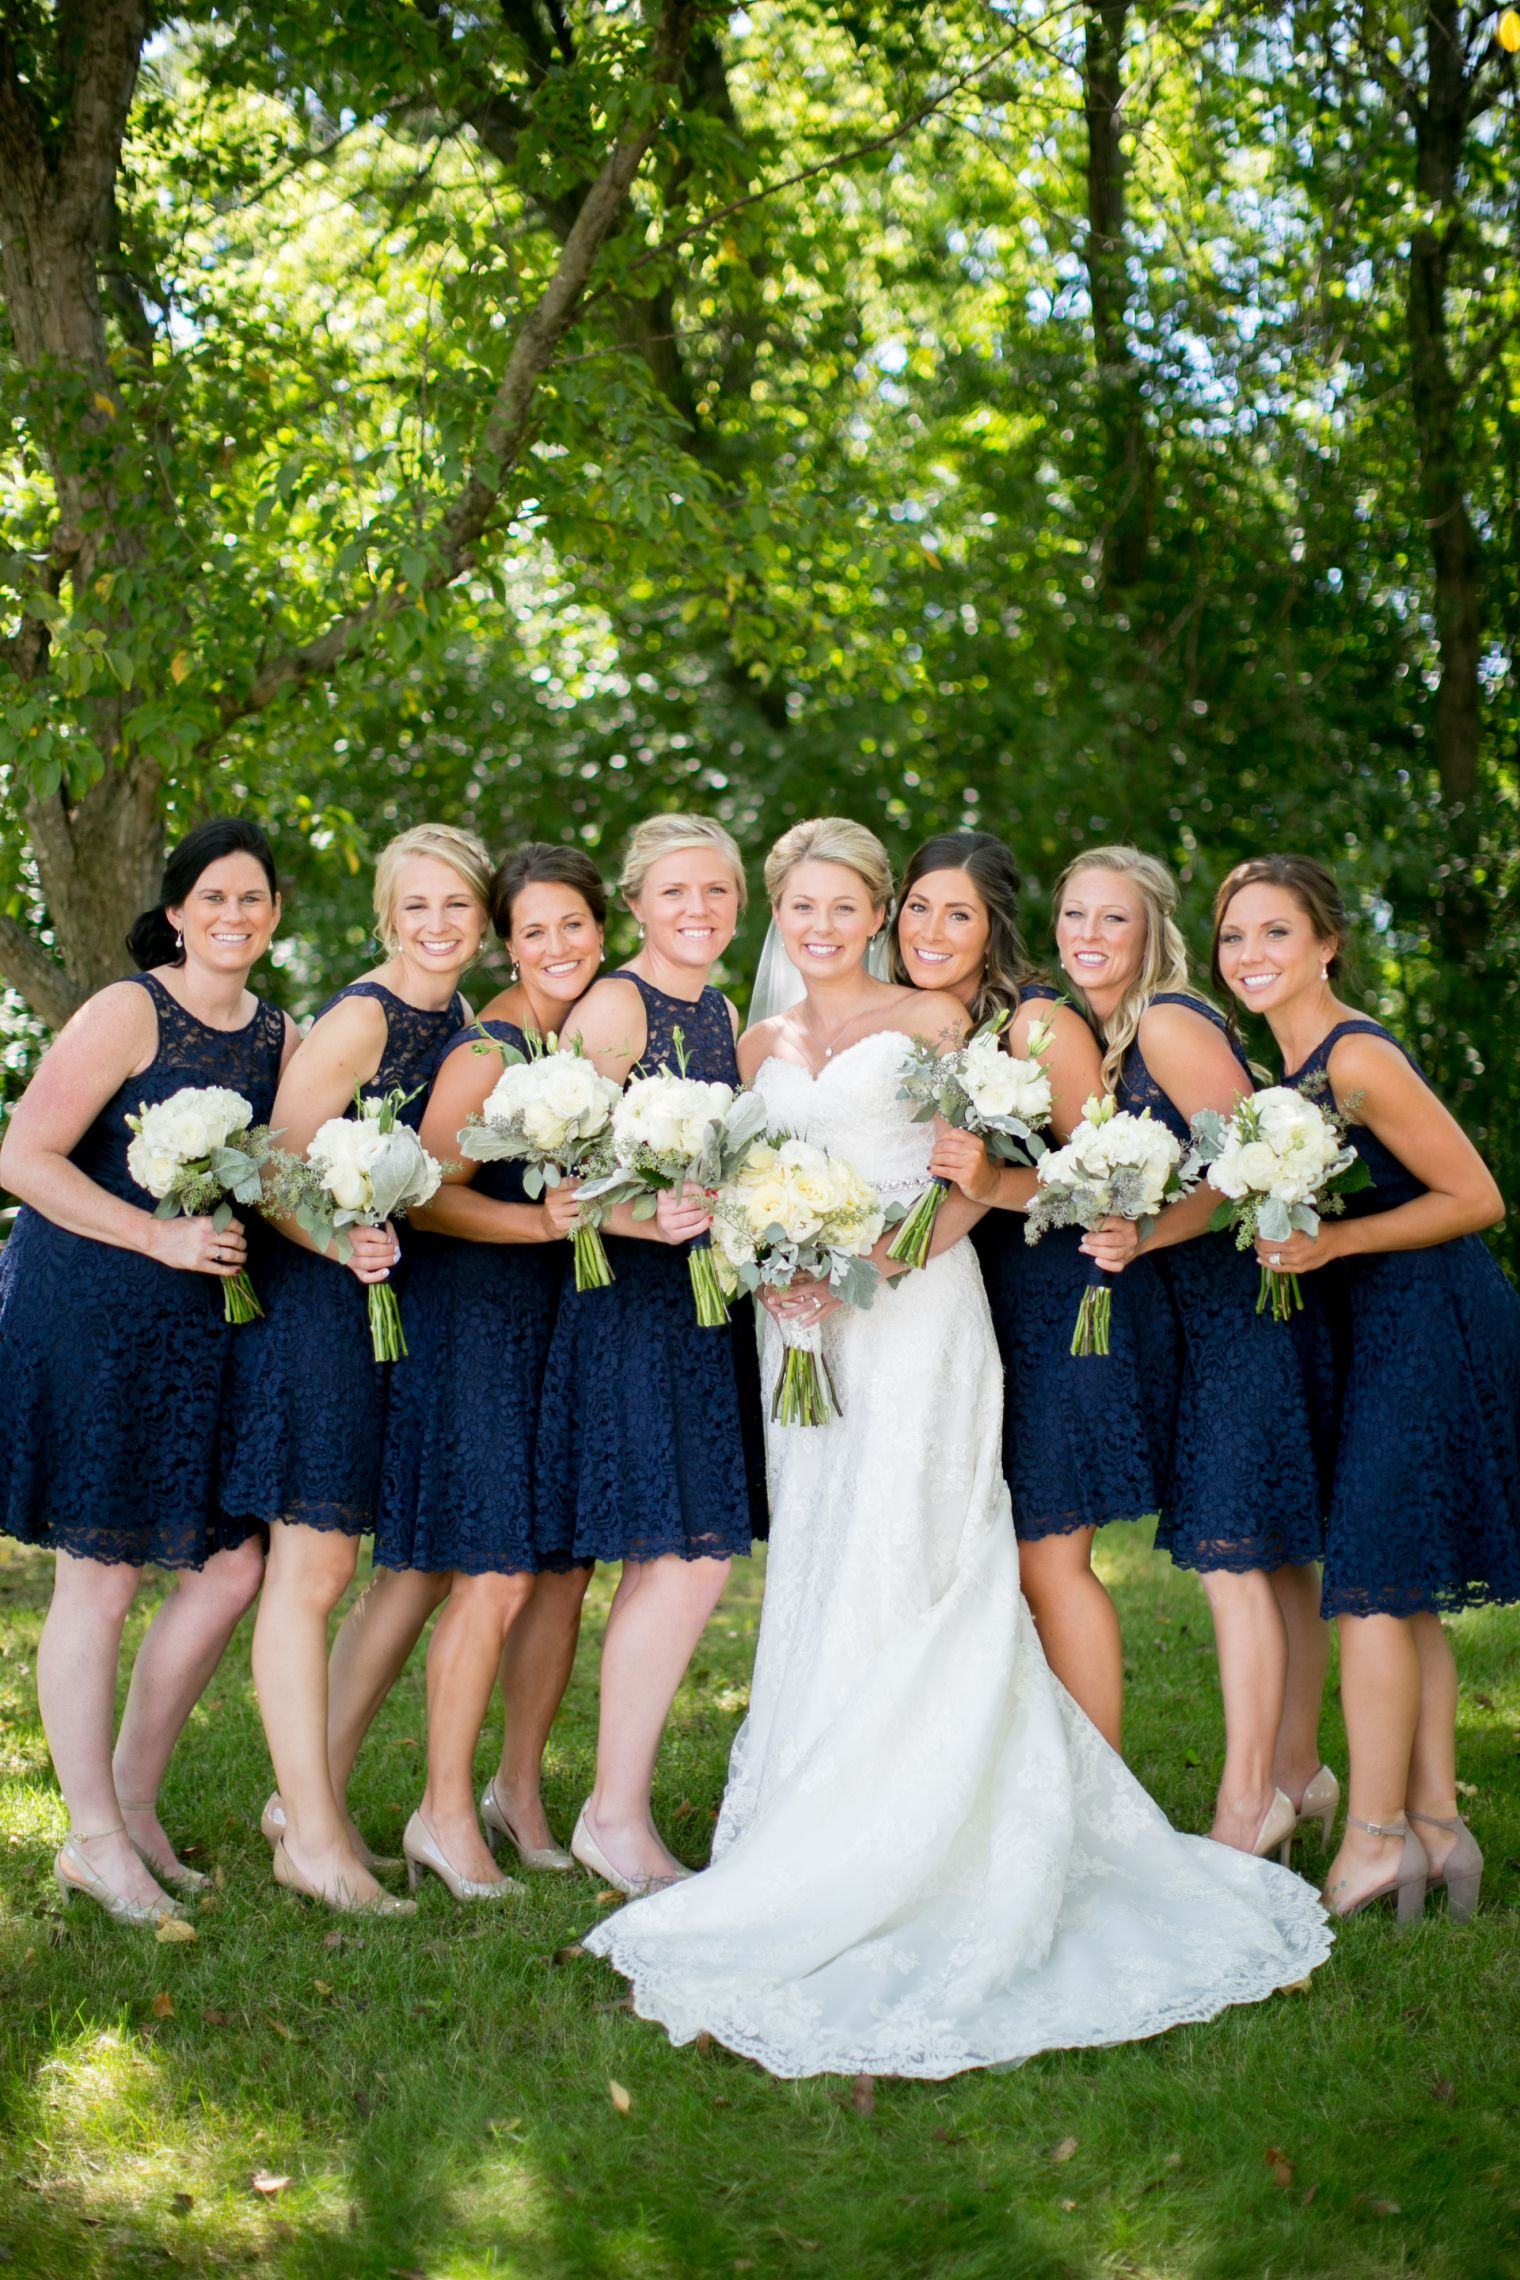 Dbmaids In Navy Blue Bridesmaid Dresses Short Lace Bridesmaid Navy Blue Bridesmaid Dresses Short Blue Bridesmaid Dresses Short Short Lace Bridesmaid Dresses